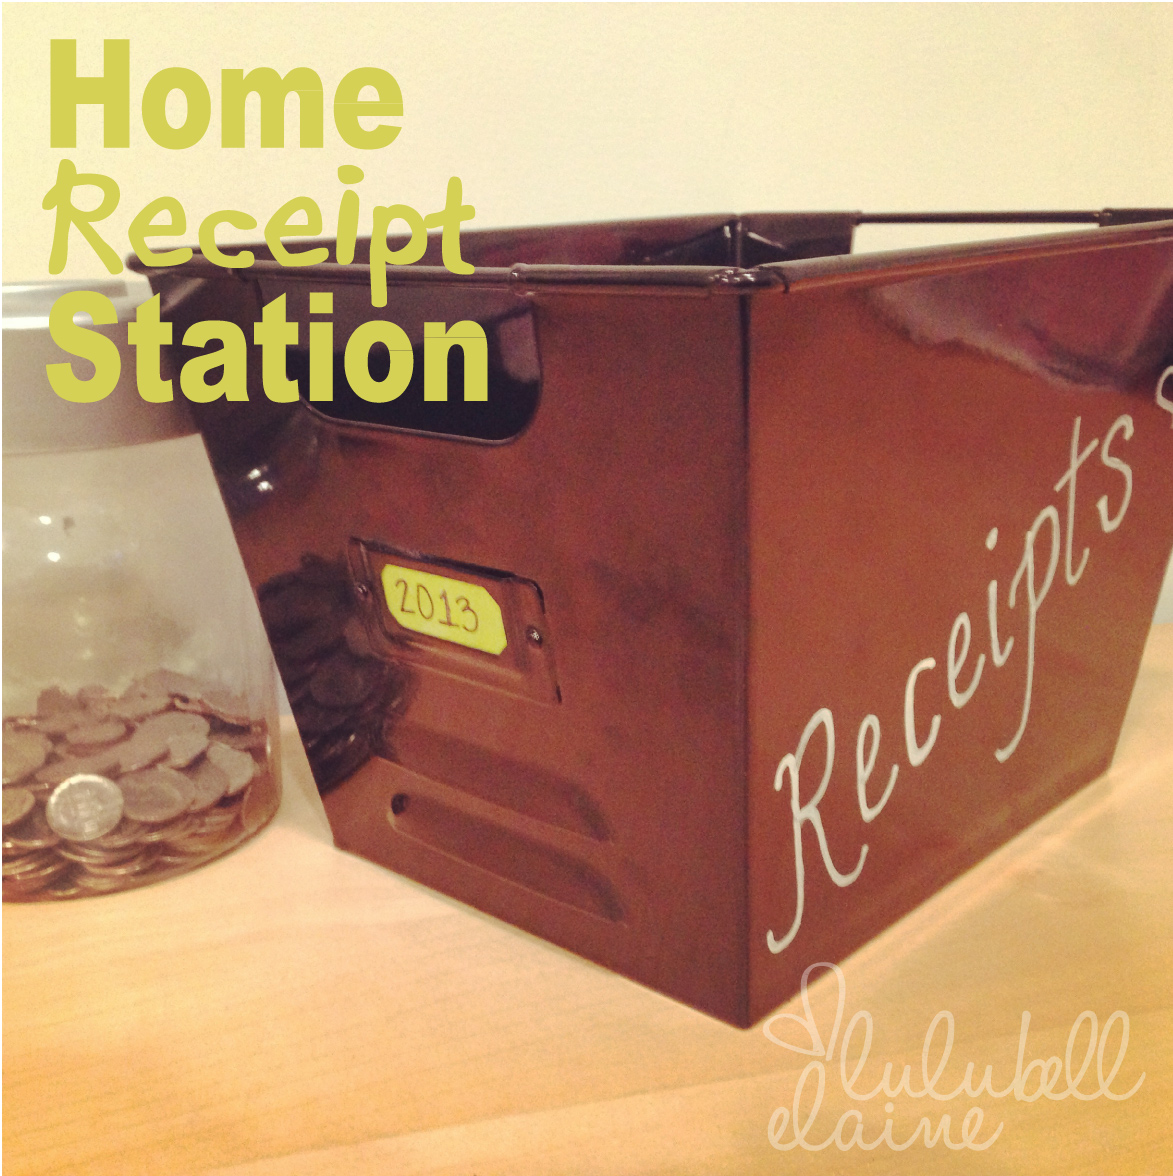 Home Receipt Station